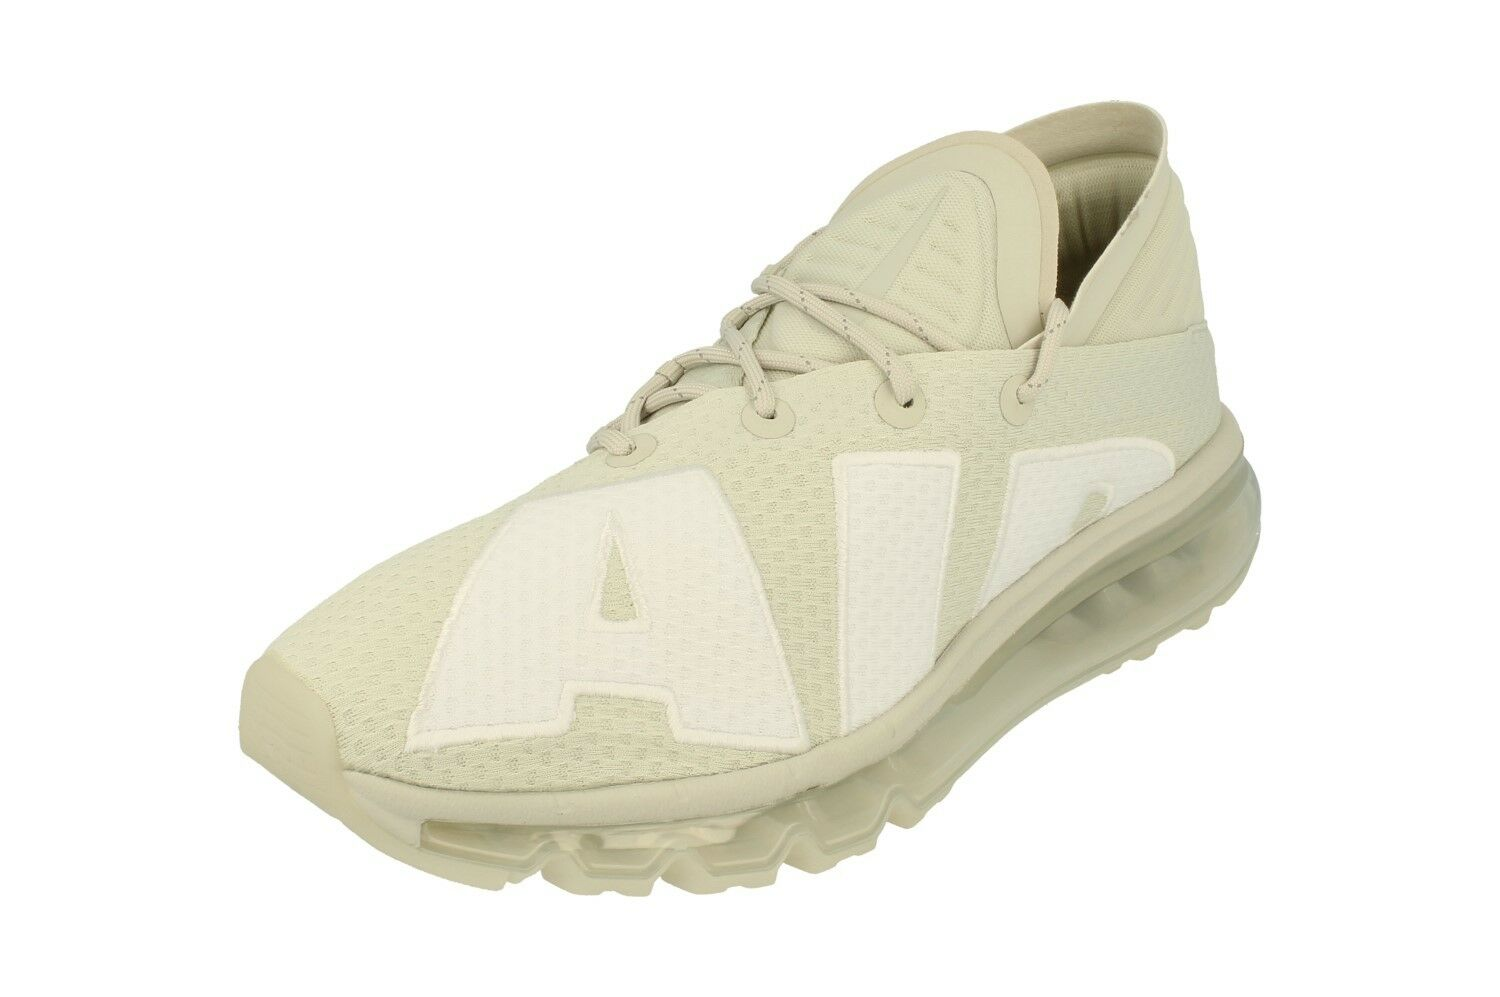 Nike Running Air Max Flair Mens Running Nike Trainers 942236 Sneakers Shoes 005 cc5503